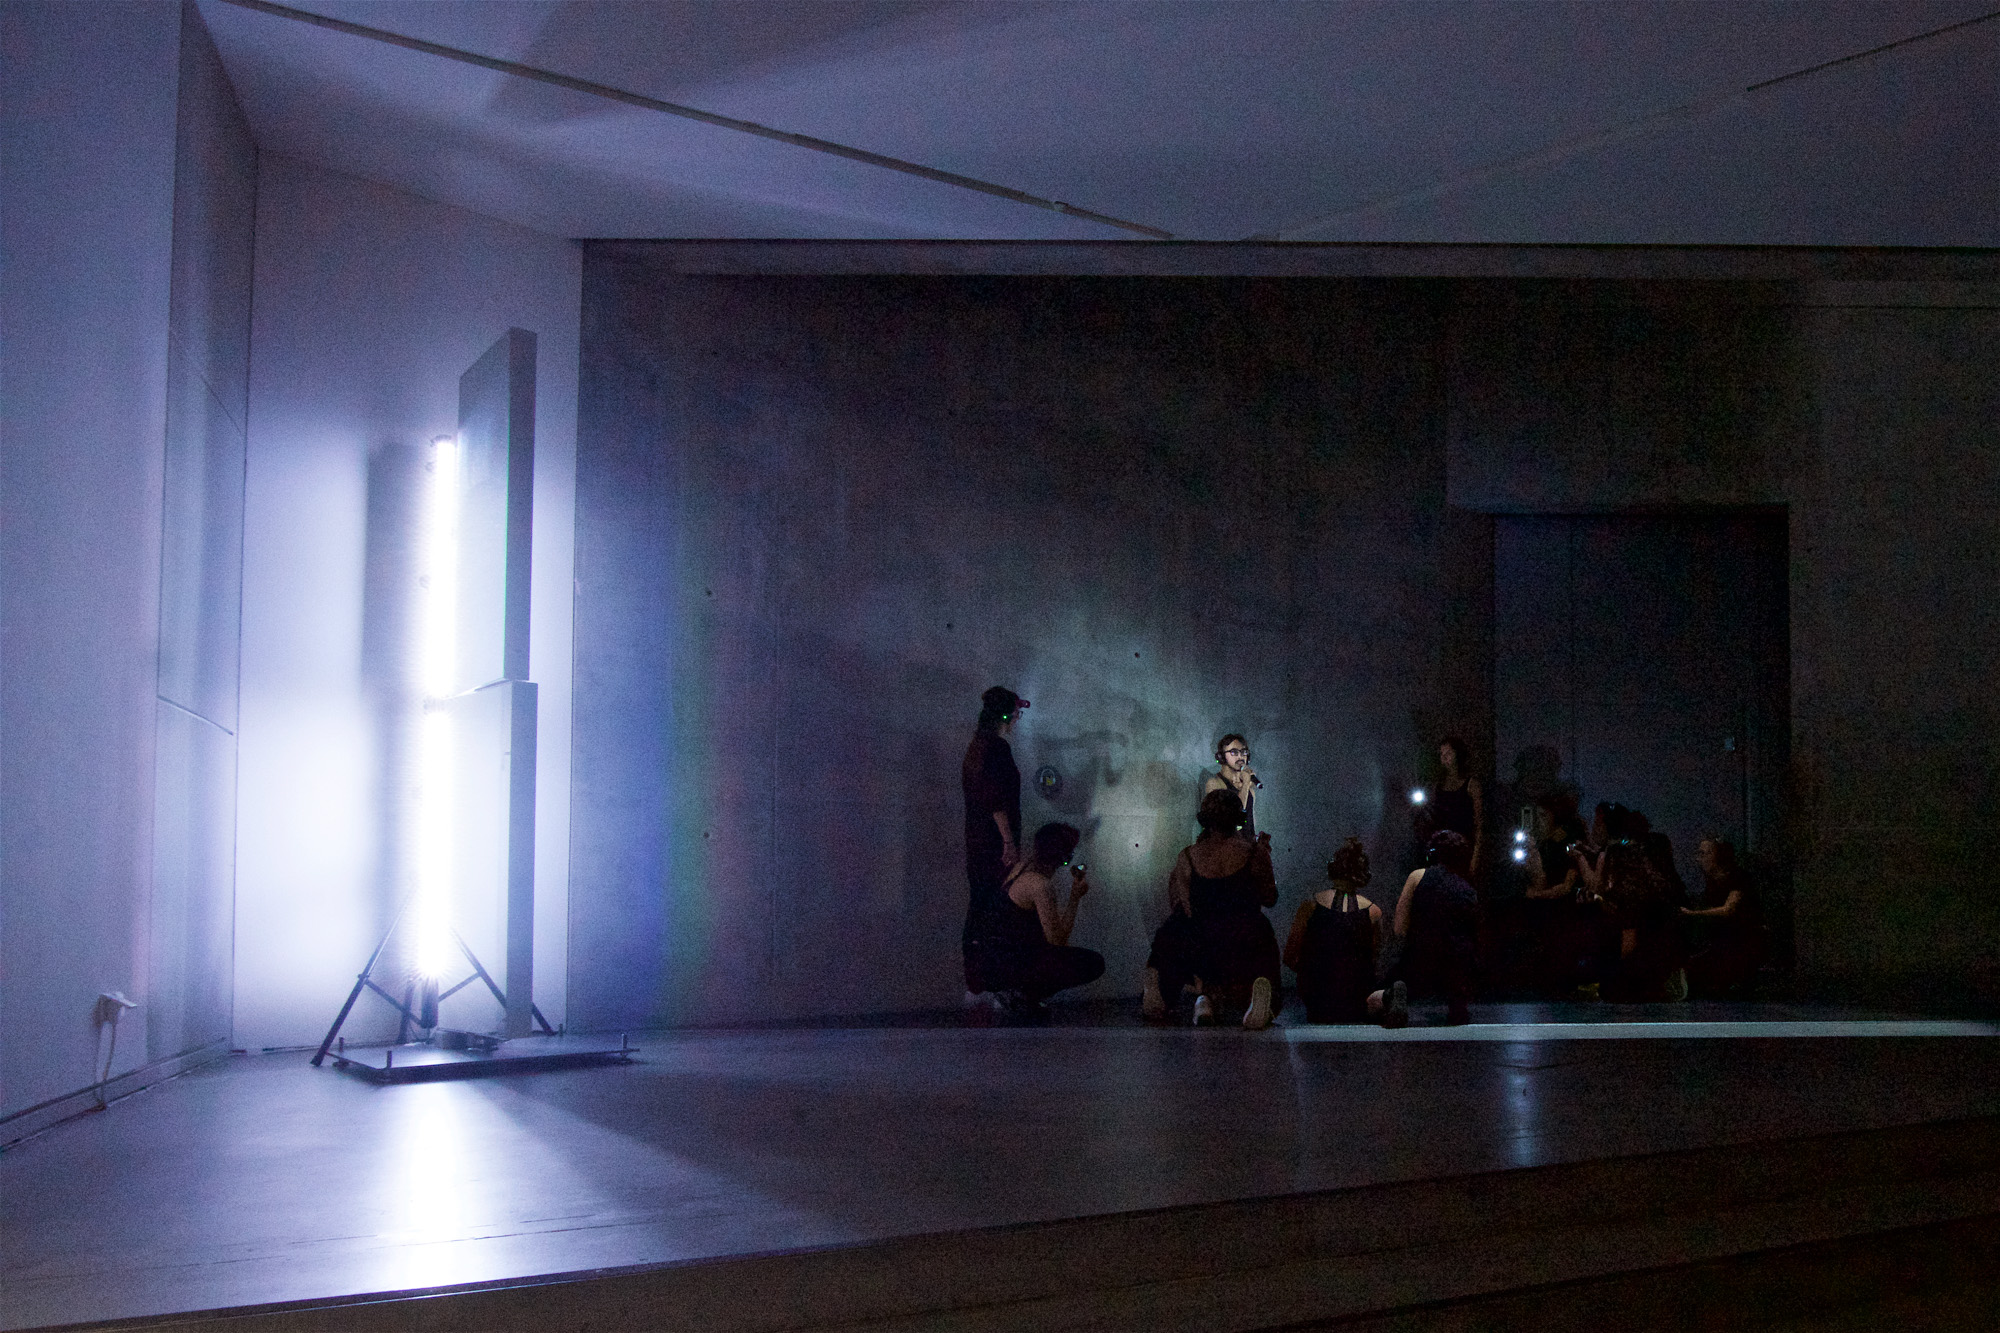 Performance #5 IRRLICHTER Kreuzberger ACADEMY, May / June 2018, IN: res·o·nant, 2017, Installation Jüdisches Museum Berlin / © Archive Mischa Kuball, Düsseldorf / VG Bild-Kunst, Bonn 2018, Photo: Jens Tenhaeff, Bar Pacifico